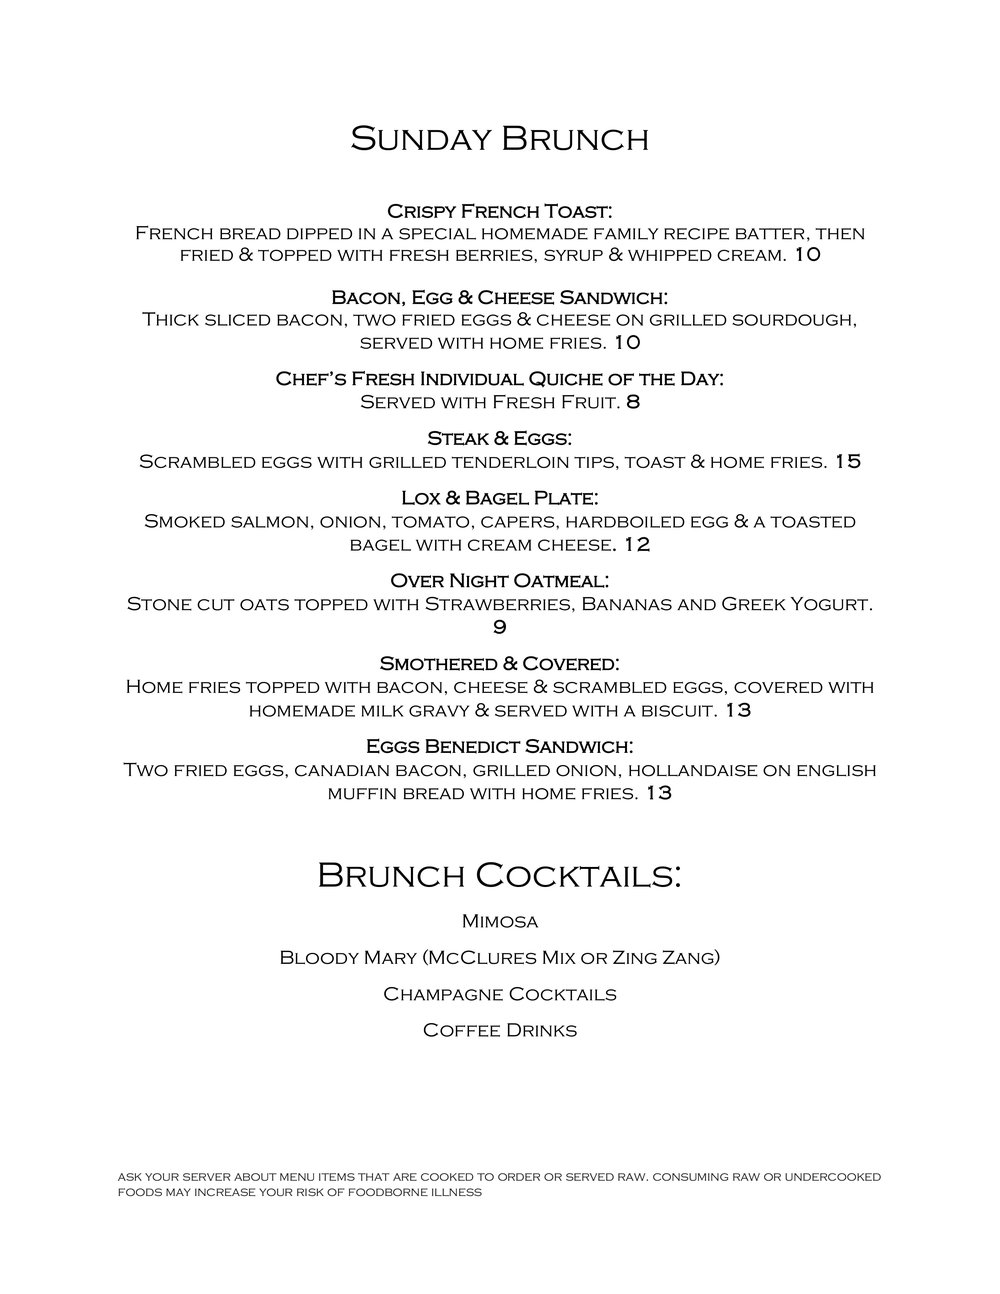 2FOG's Pub 2018 Mother's Day Brunch Menu - Page 1